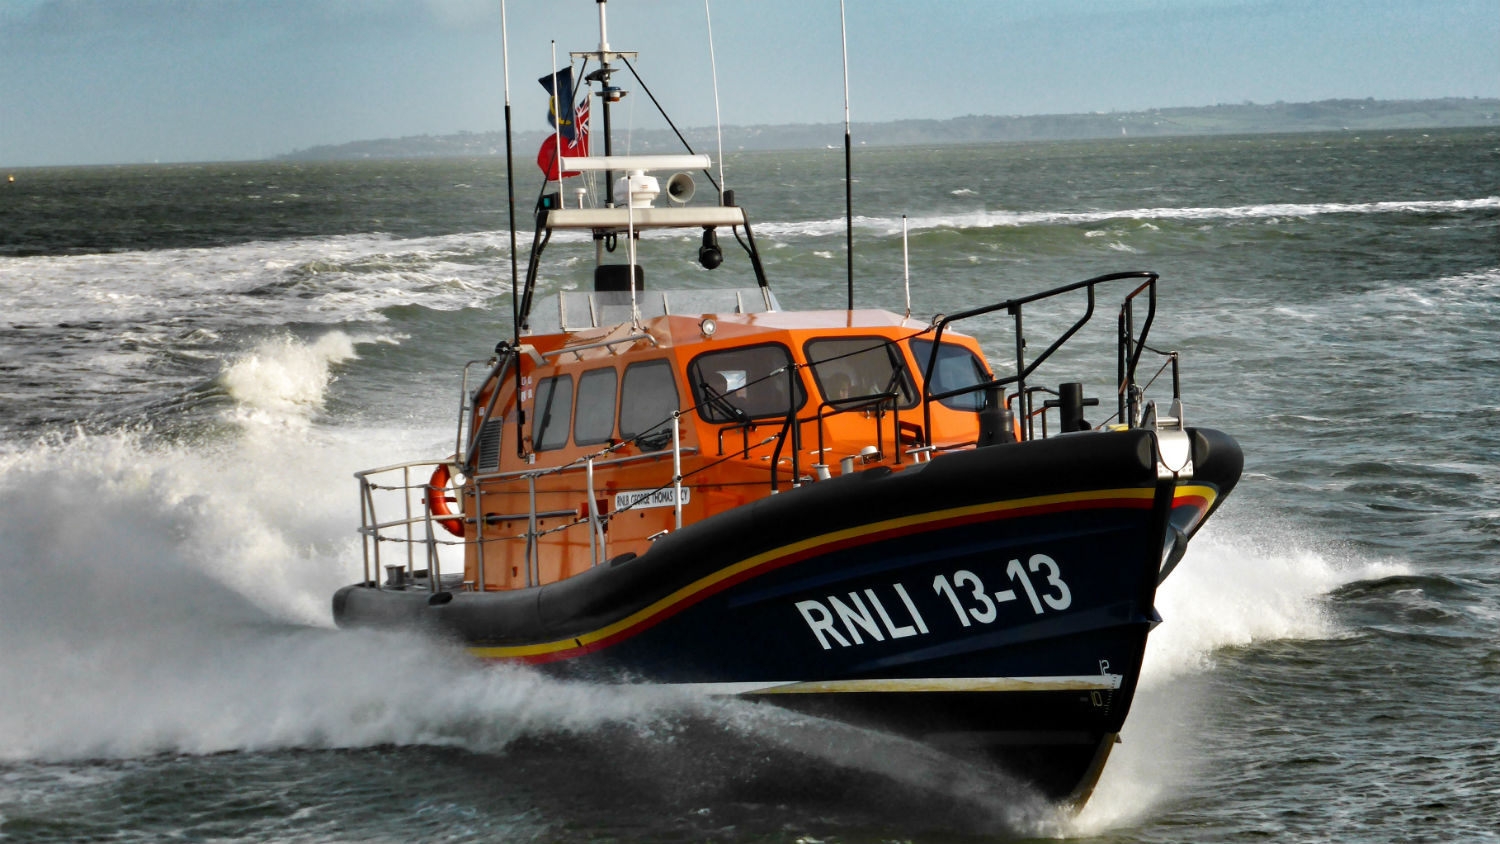 Swanage RNLI's Shannon class lifeboat, George Thomas Lacy 13-13, at sea.